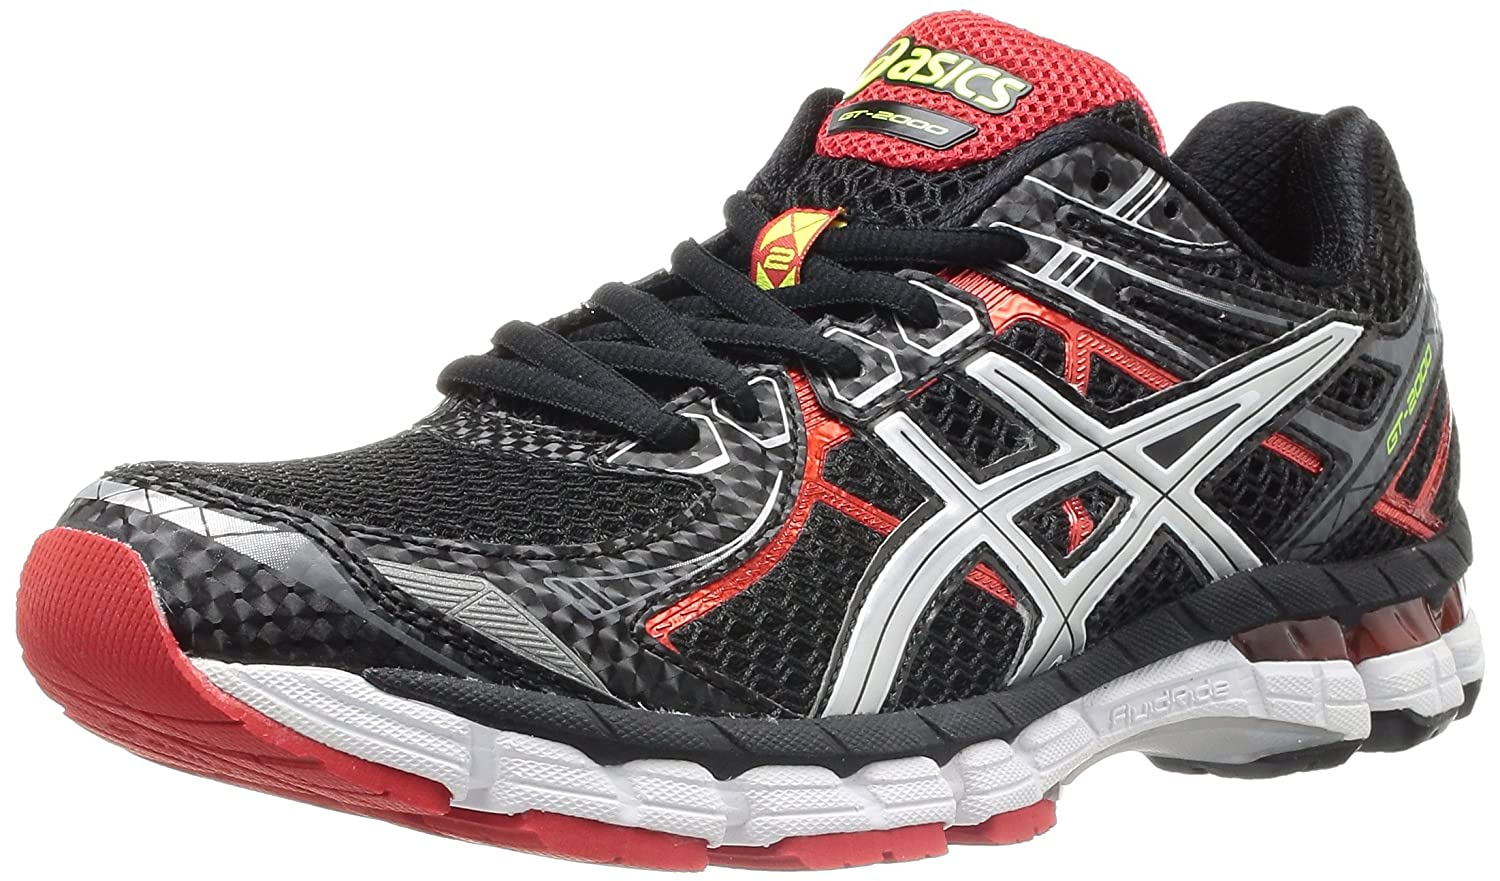 Asics GT-2000 Trail Running Shoes$53.97